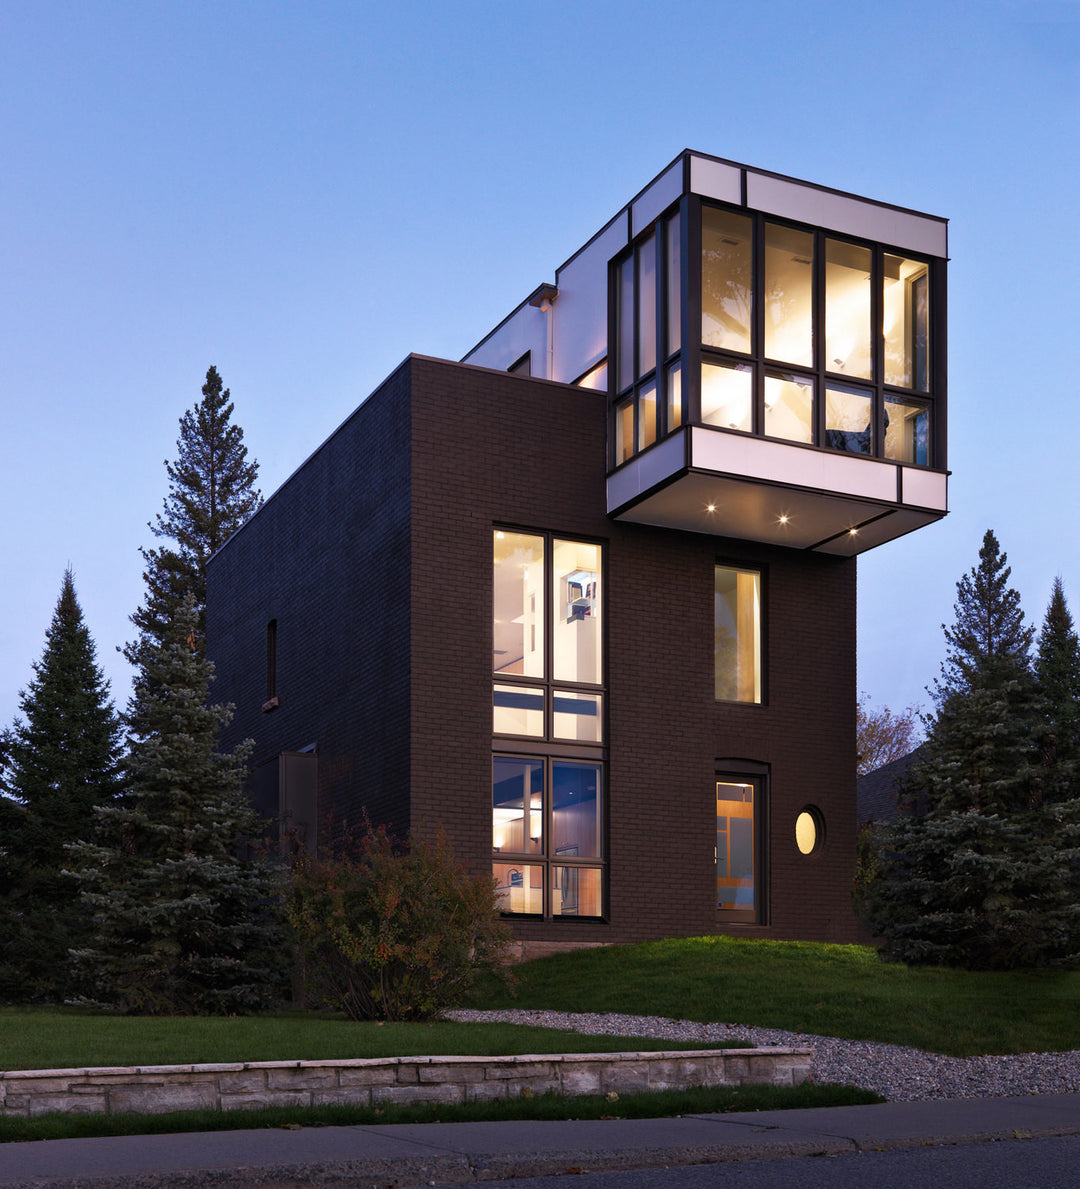 A Cubic House in Ottawa